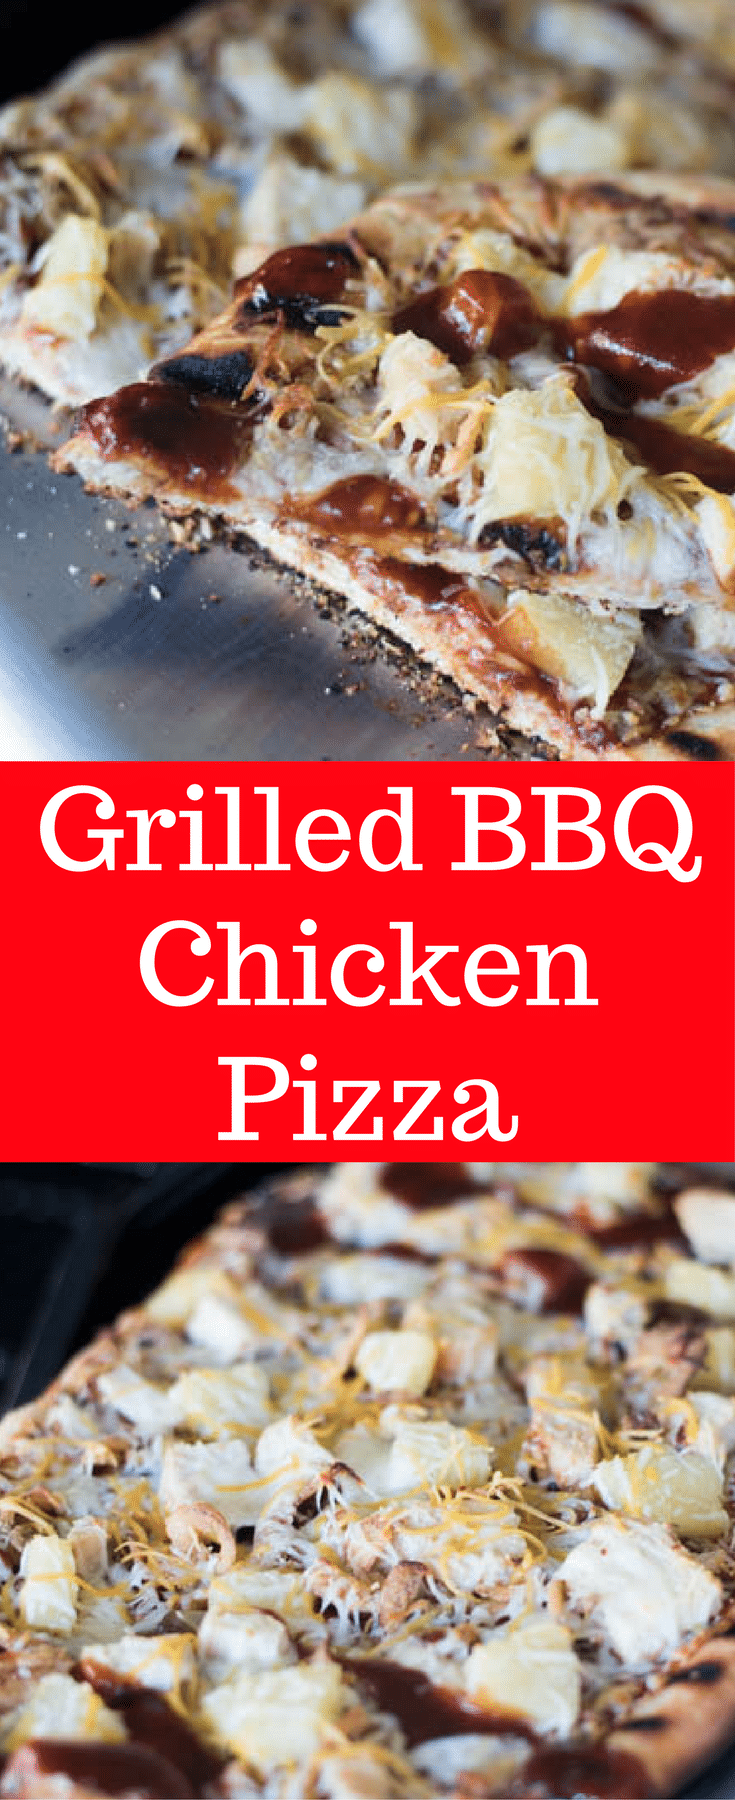 Grilled BBQ Chicken Pizza / BBQ Chicken pizza / BBQ Pizza / Grilled Pizza Ideas / Grilled Pizza Toppings